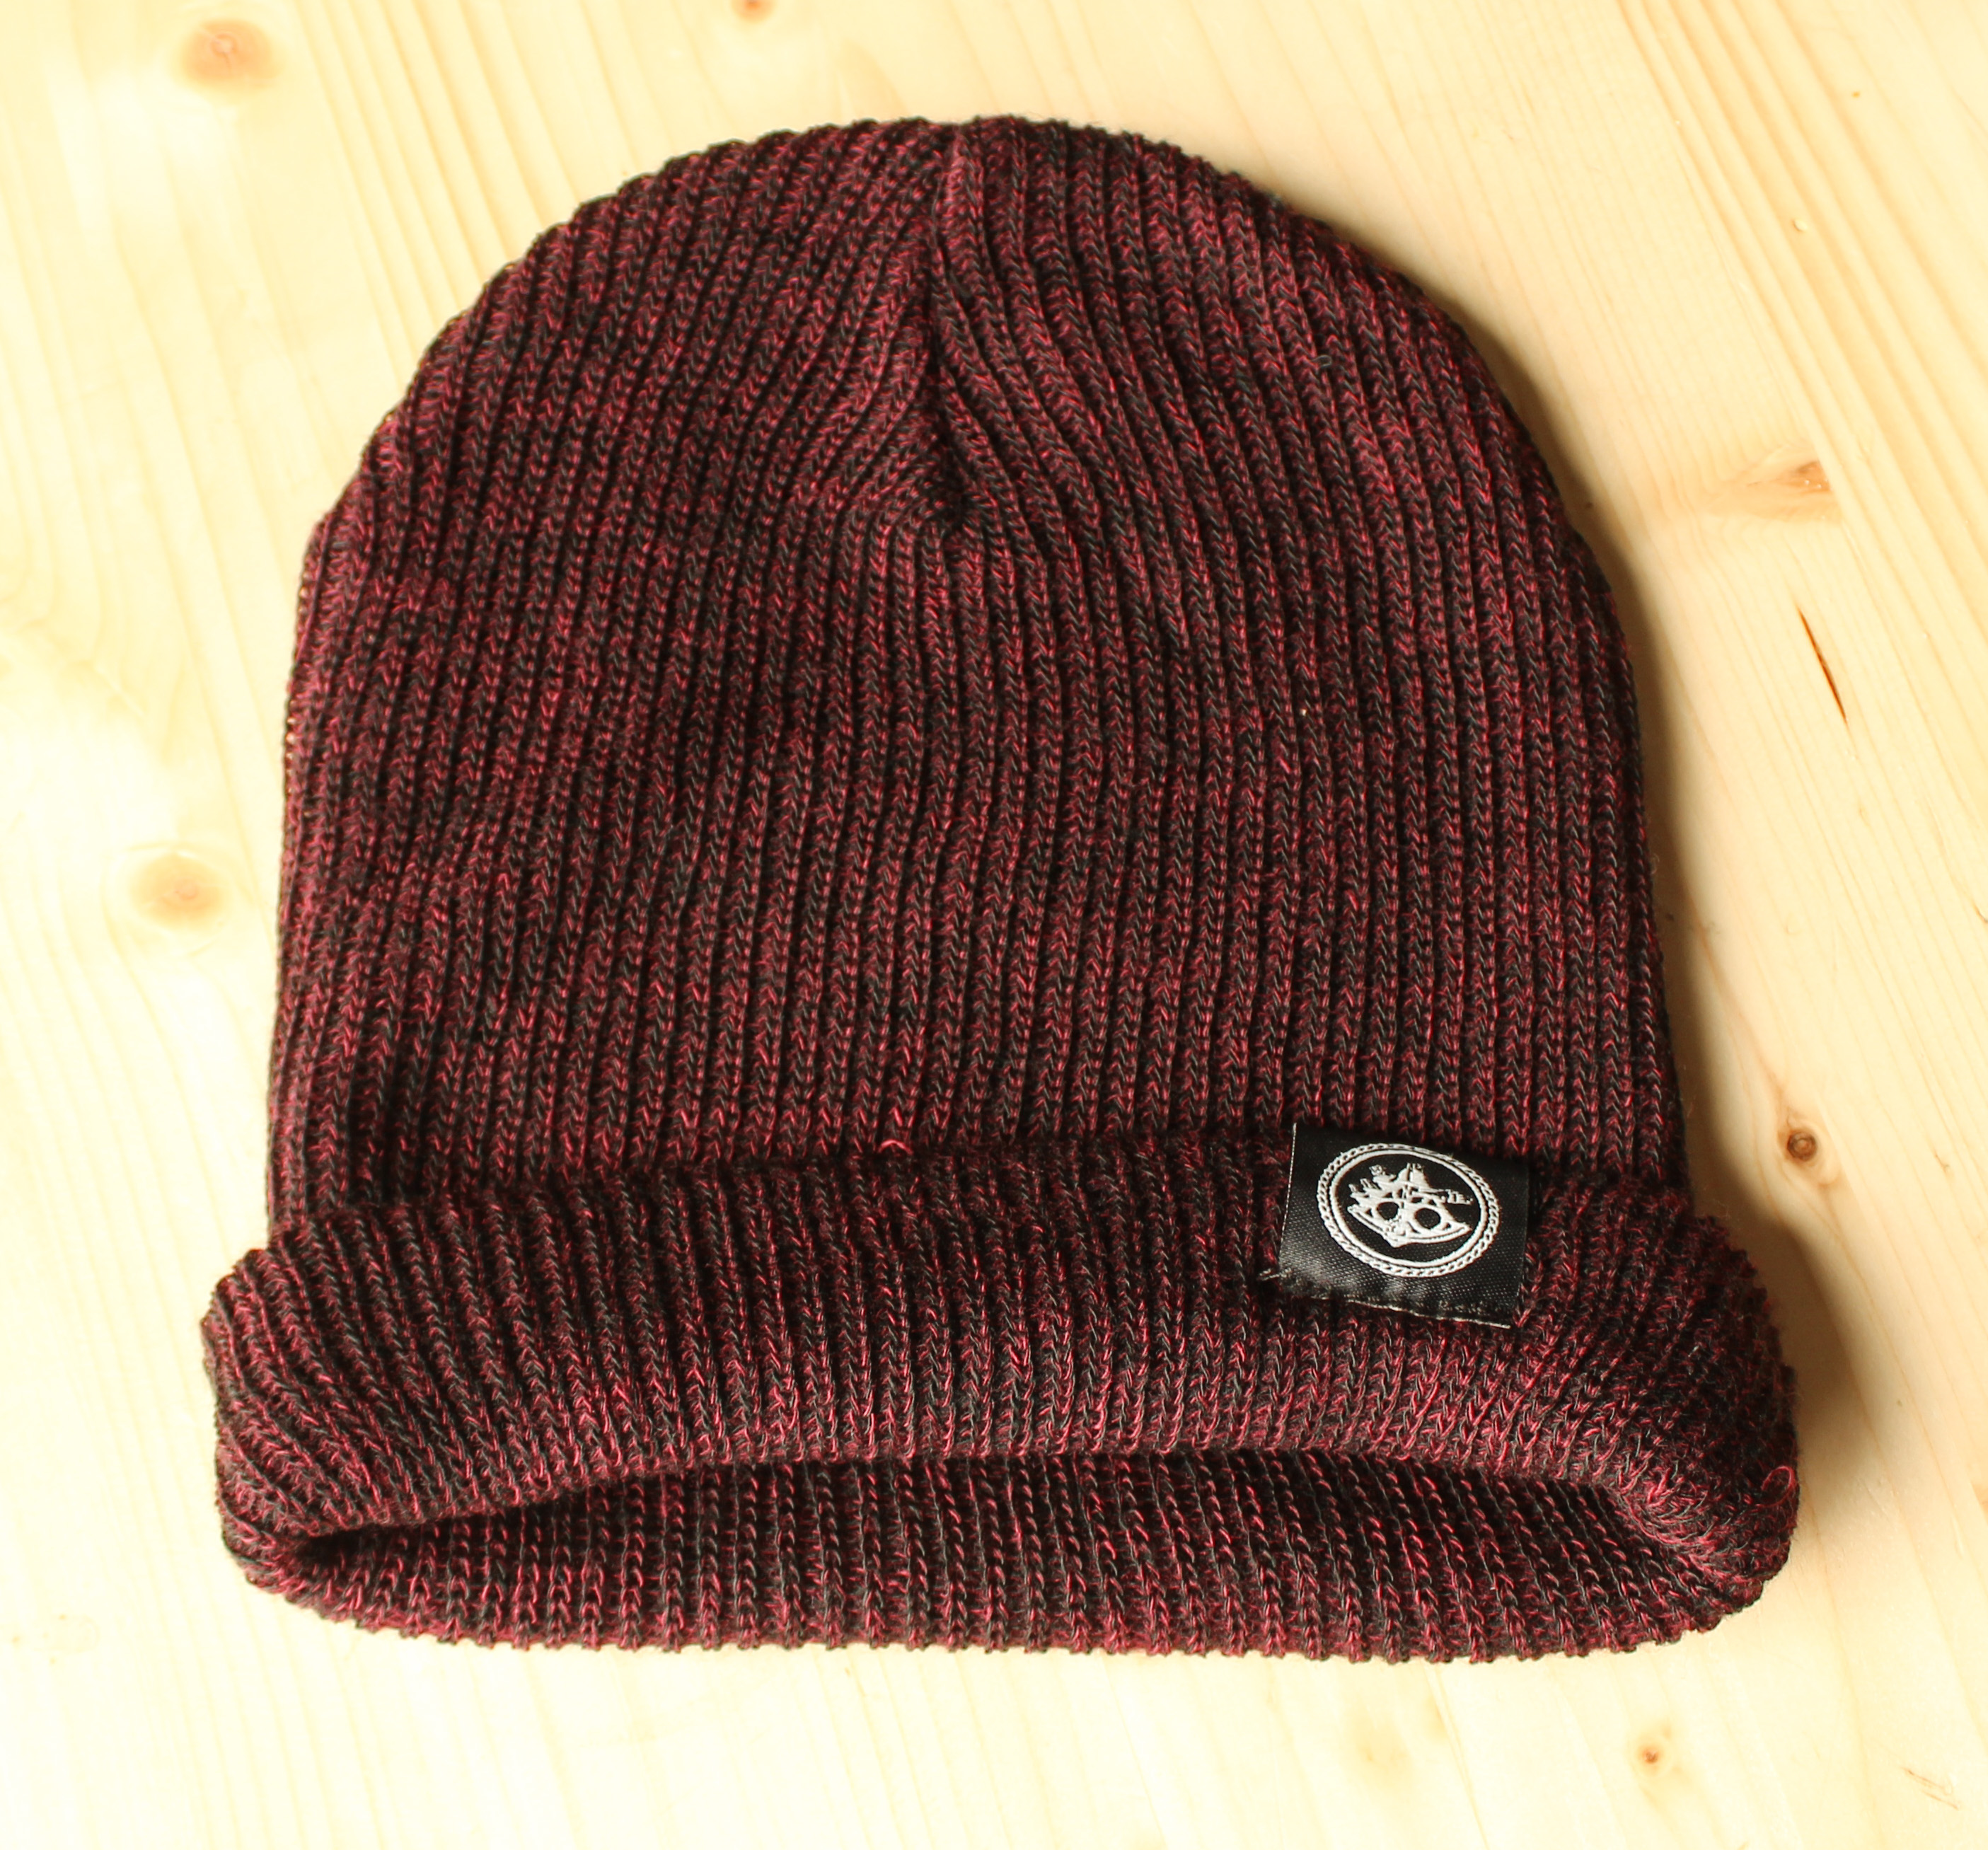 Ballast Point Burgundy Beanie – Ballast Point Brewing Co. Online Store 9dcb43e5f45